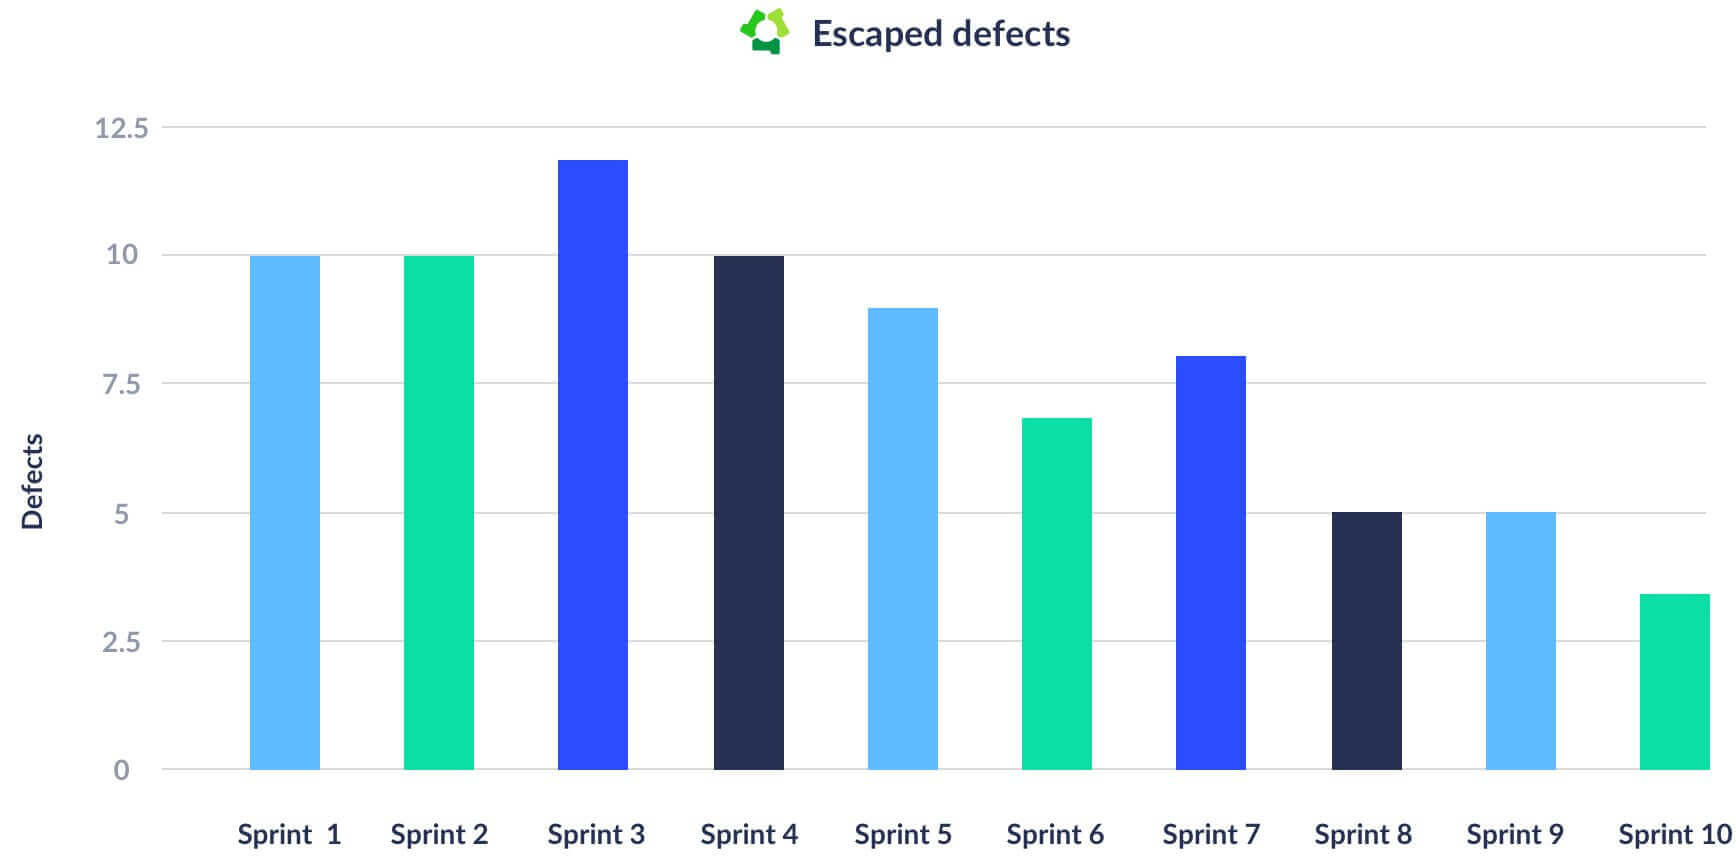 escaped defects chart